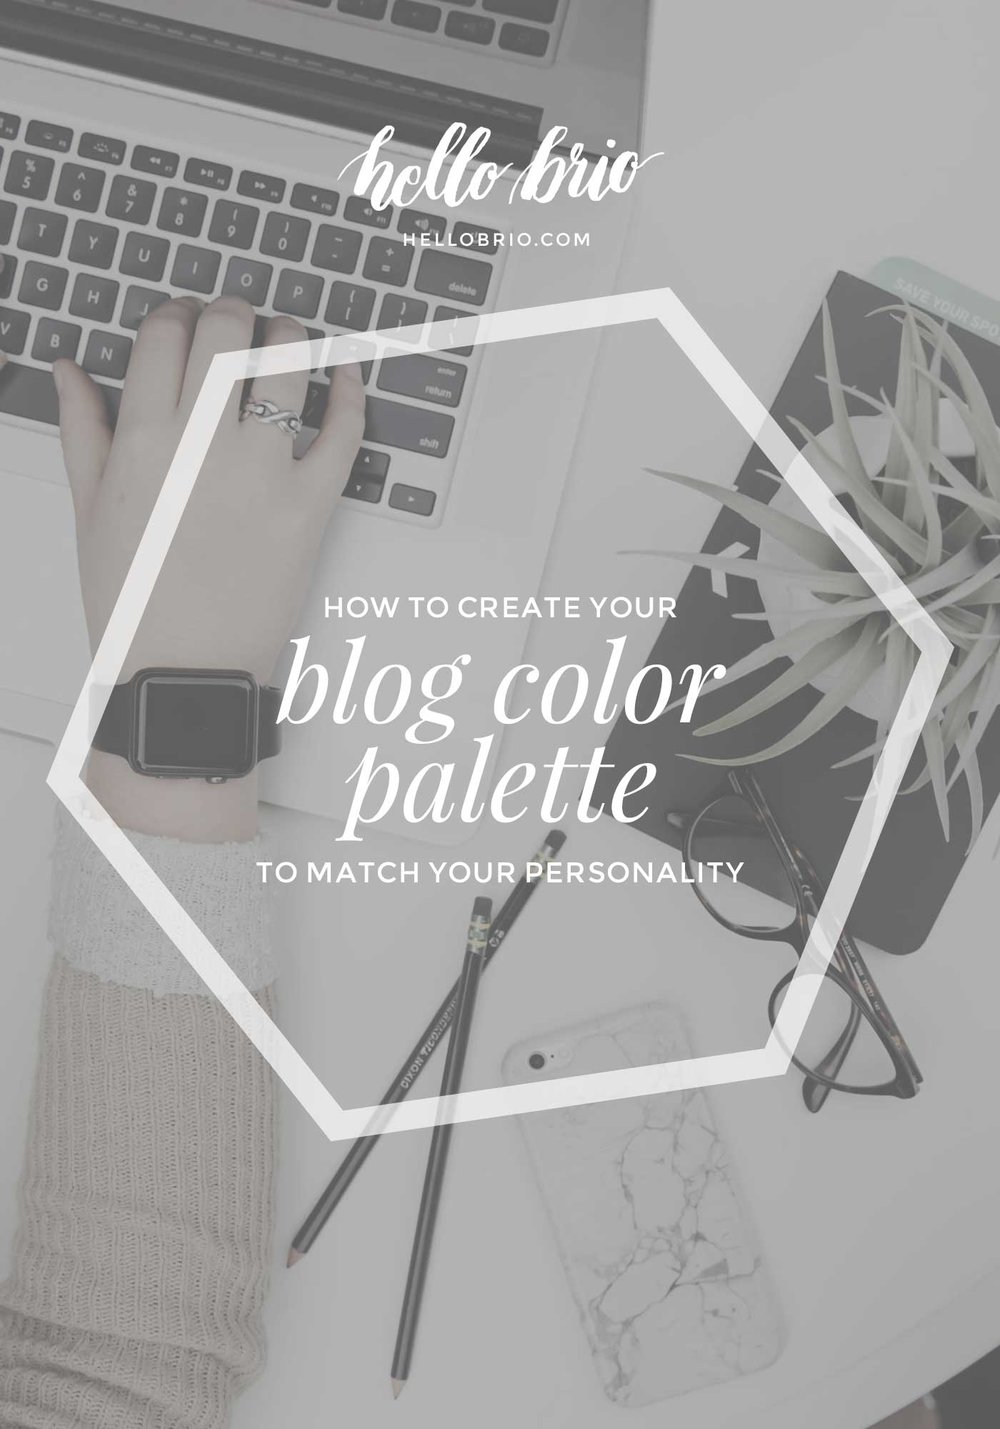 How to choose your blog's color palette so it matches your personality